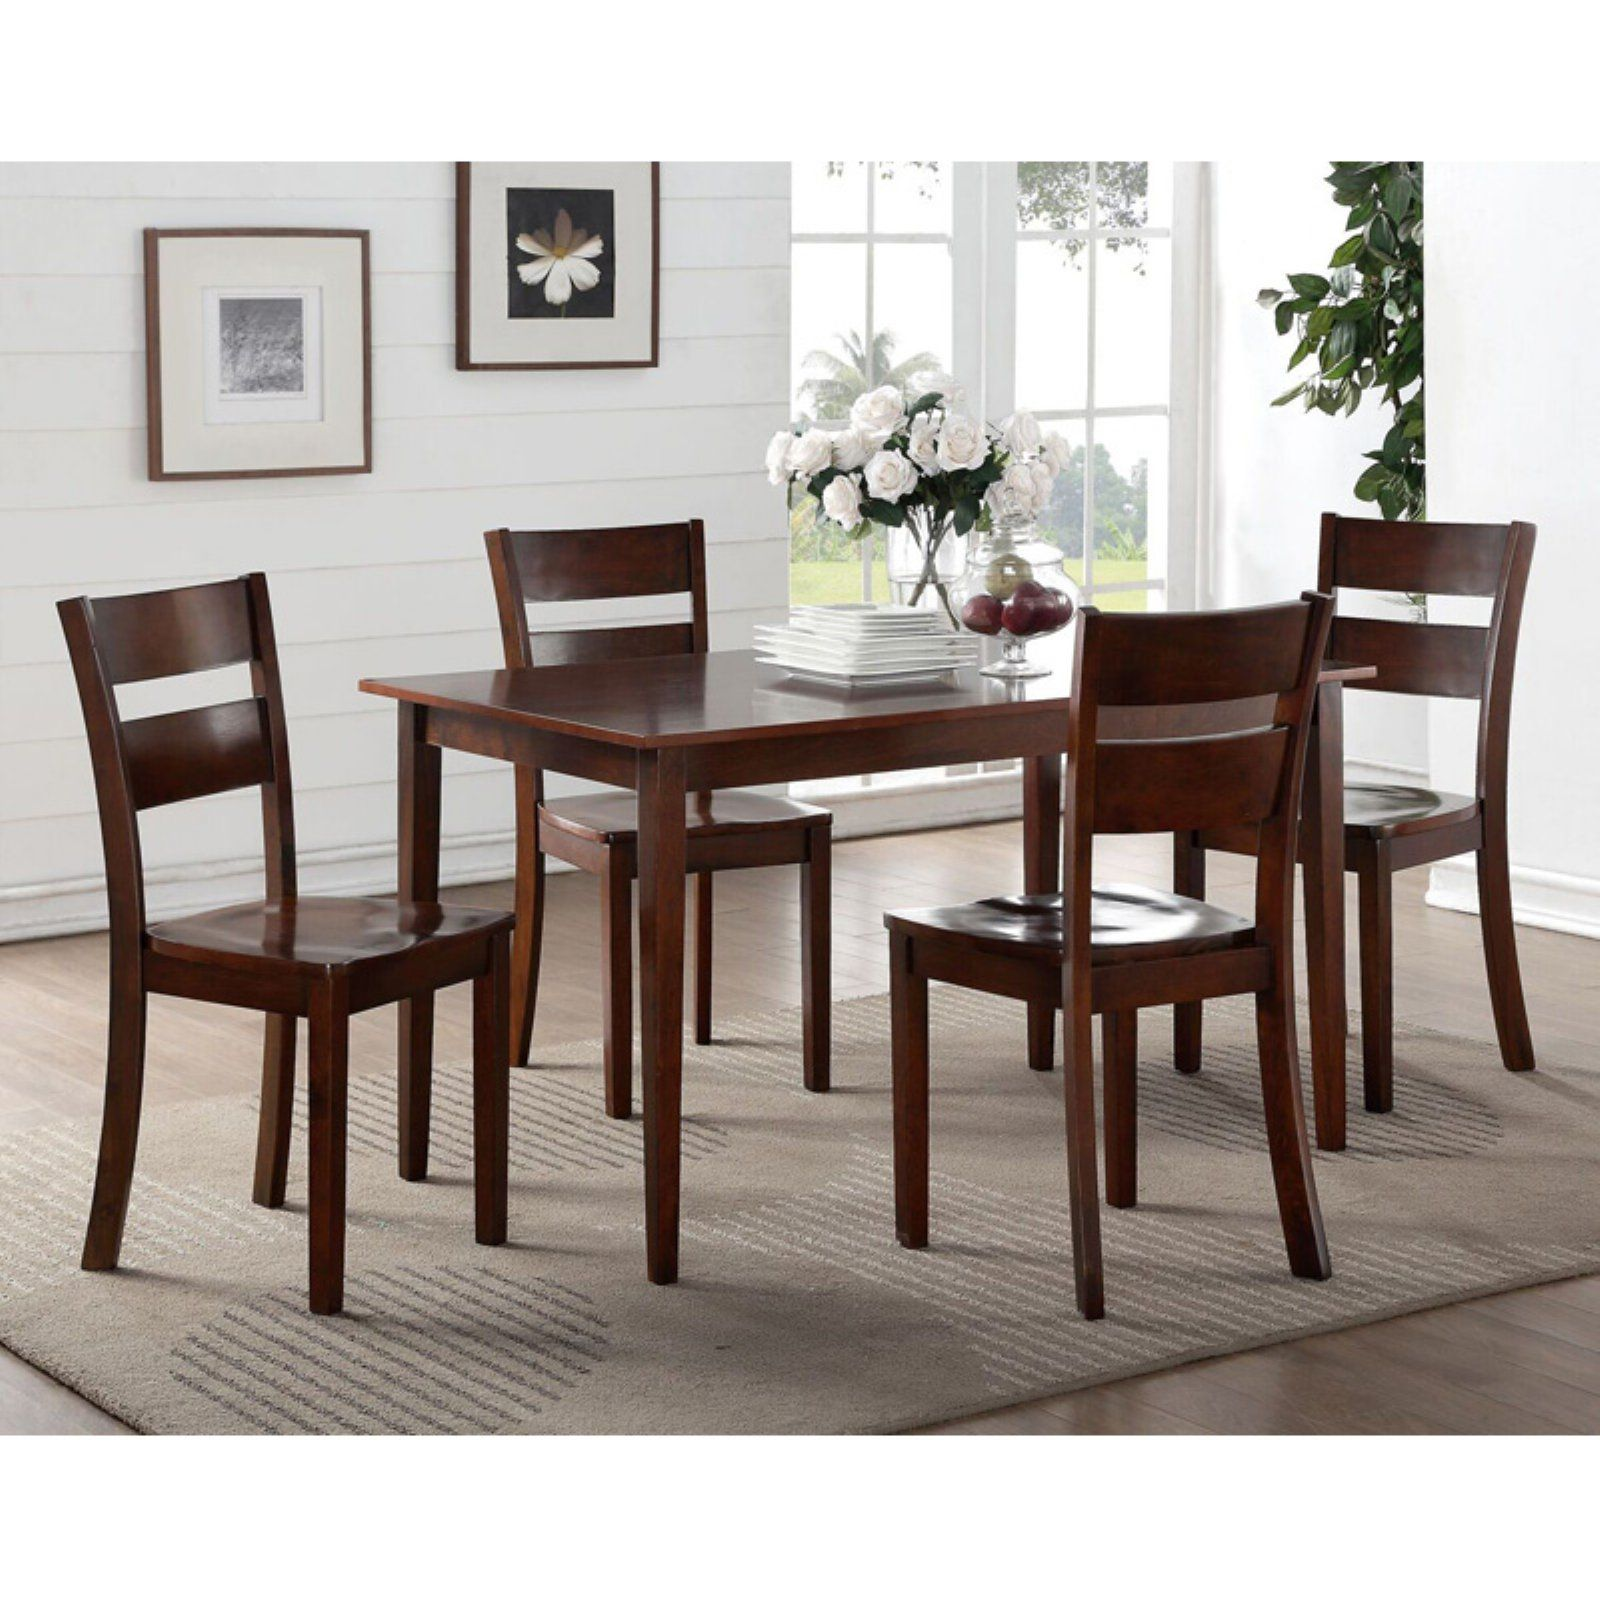 Super Kb Furniture Dark Brown Wood Dining Chairs Set Of 2 Customarchery Wood Chair Design Ideas Customarcherynet